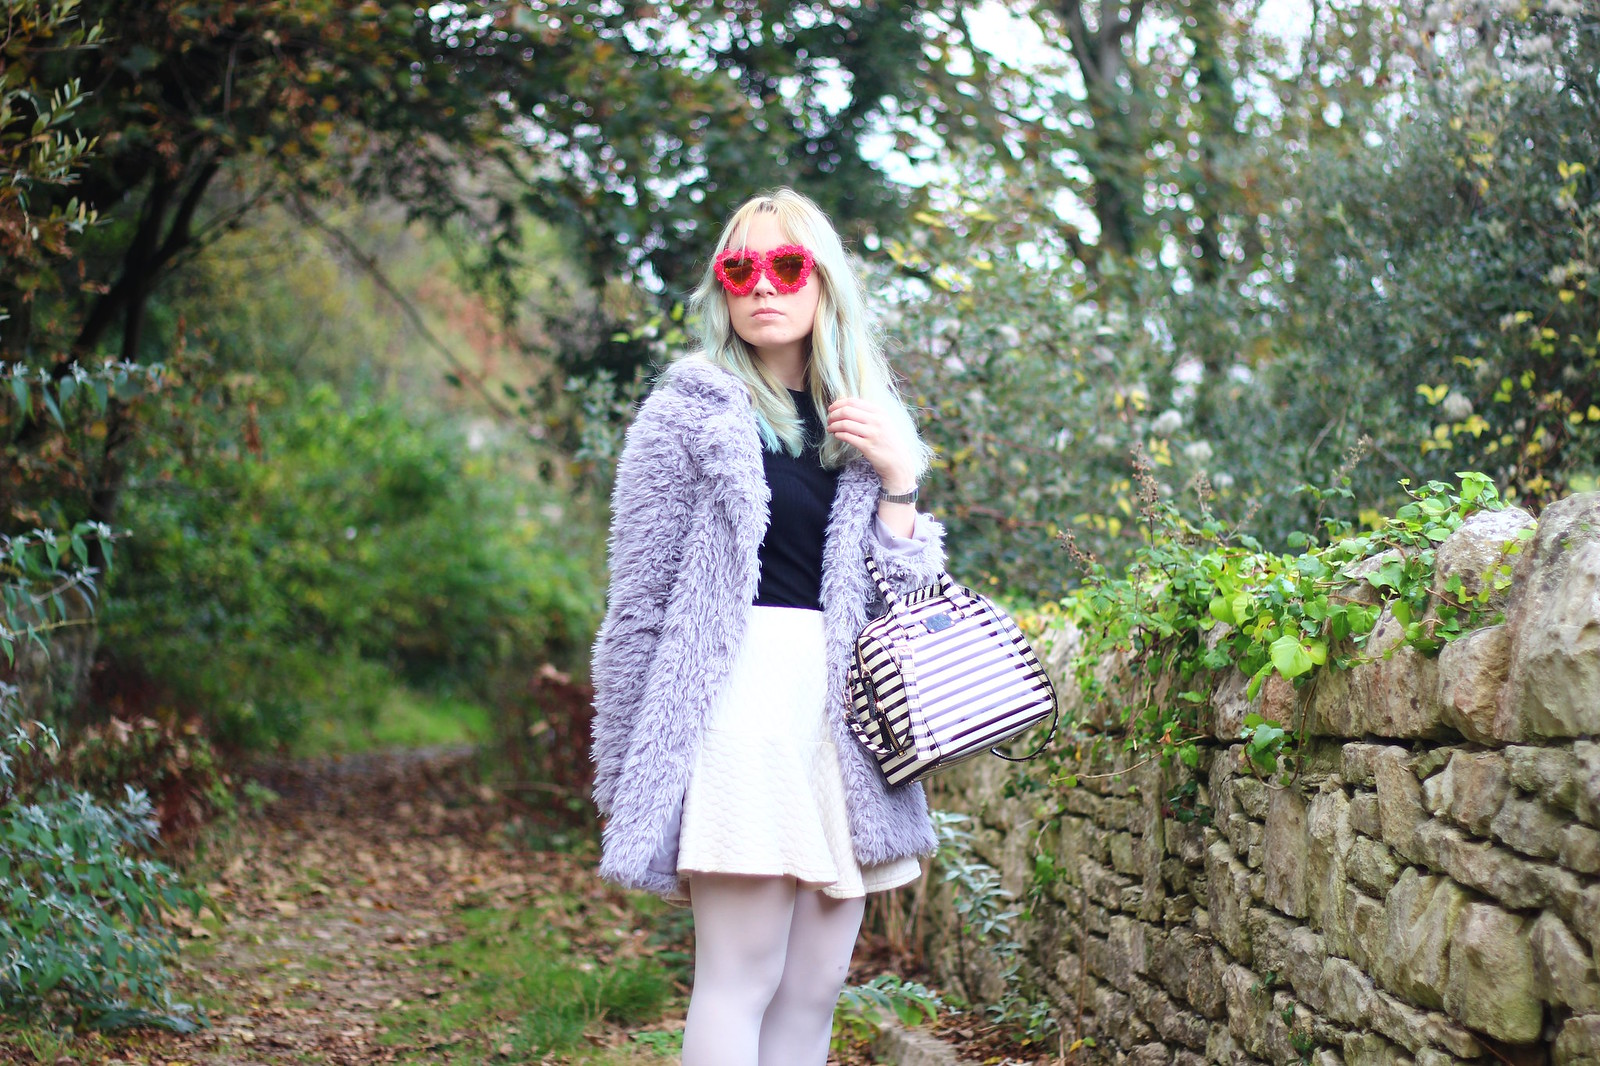 5heartglasses, pastel hair blogger, heart shaped sunglasses, style